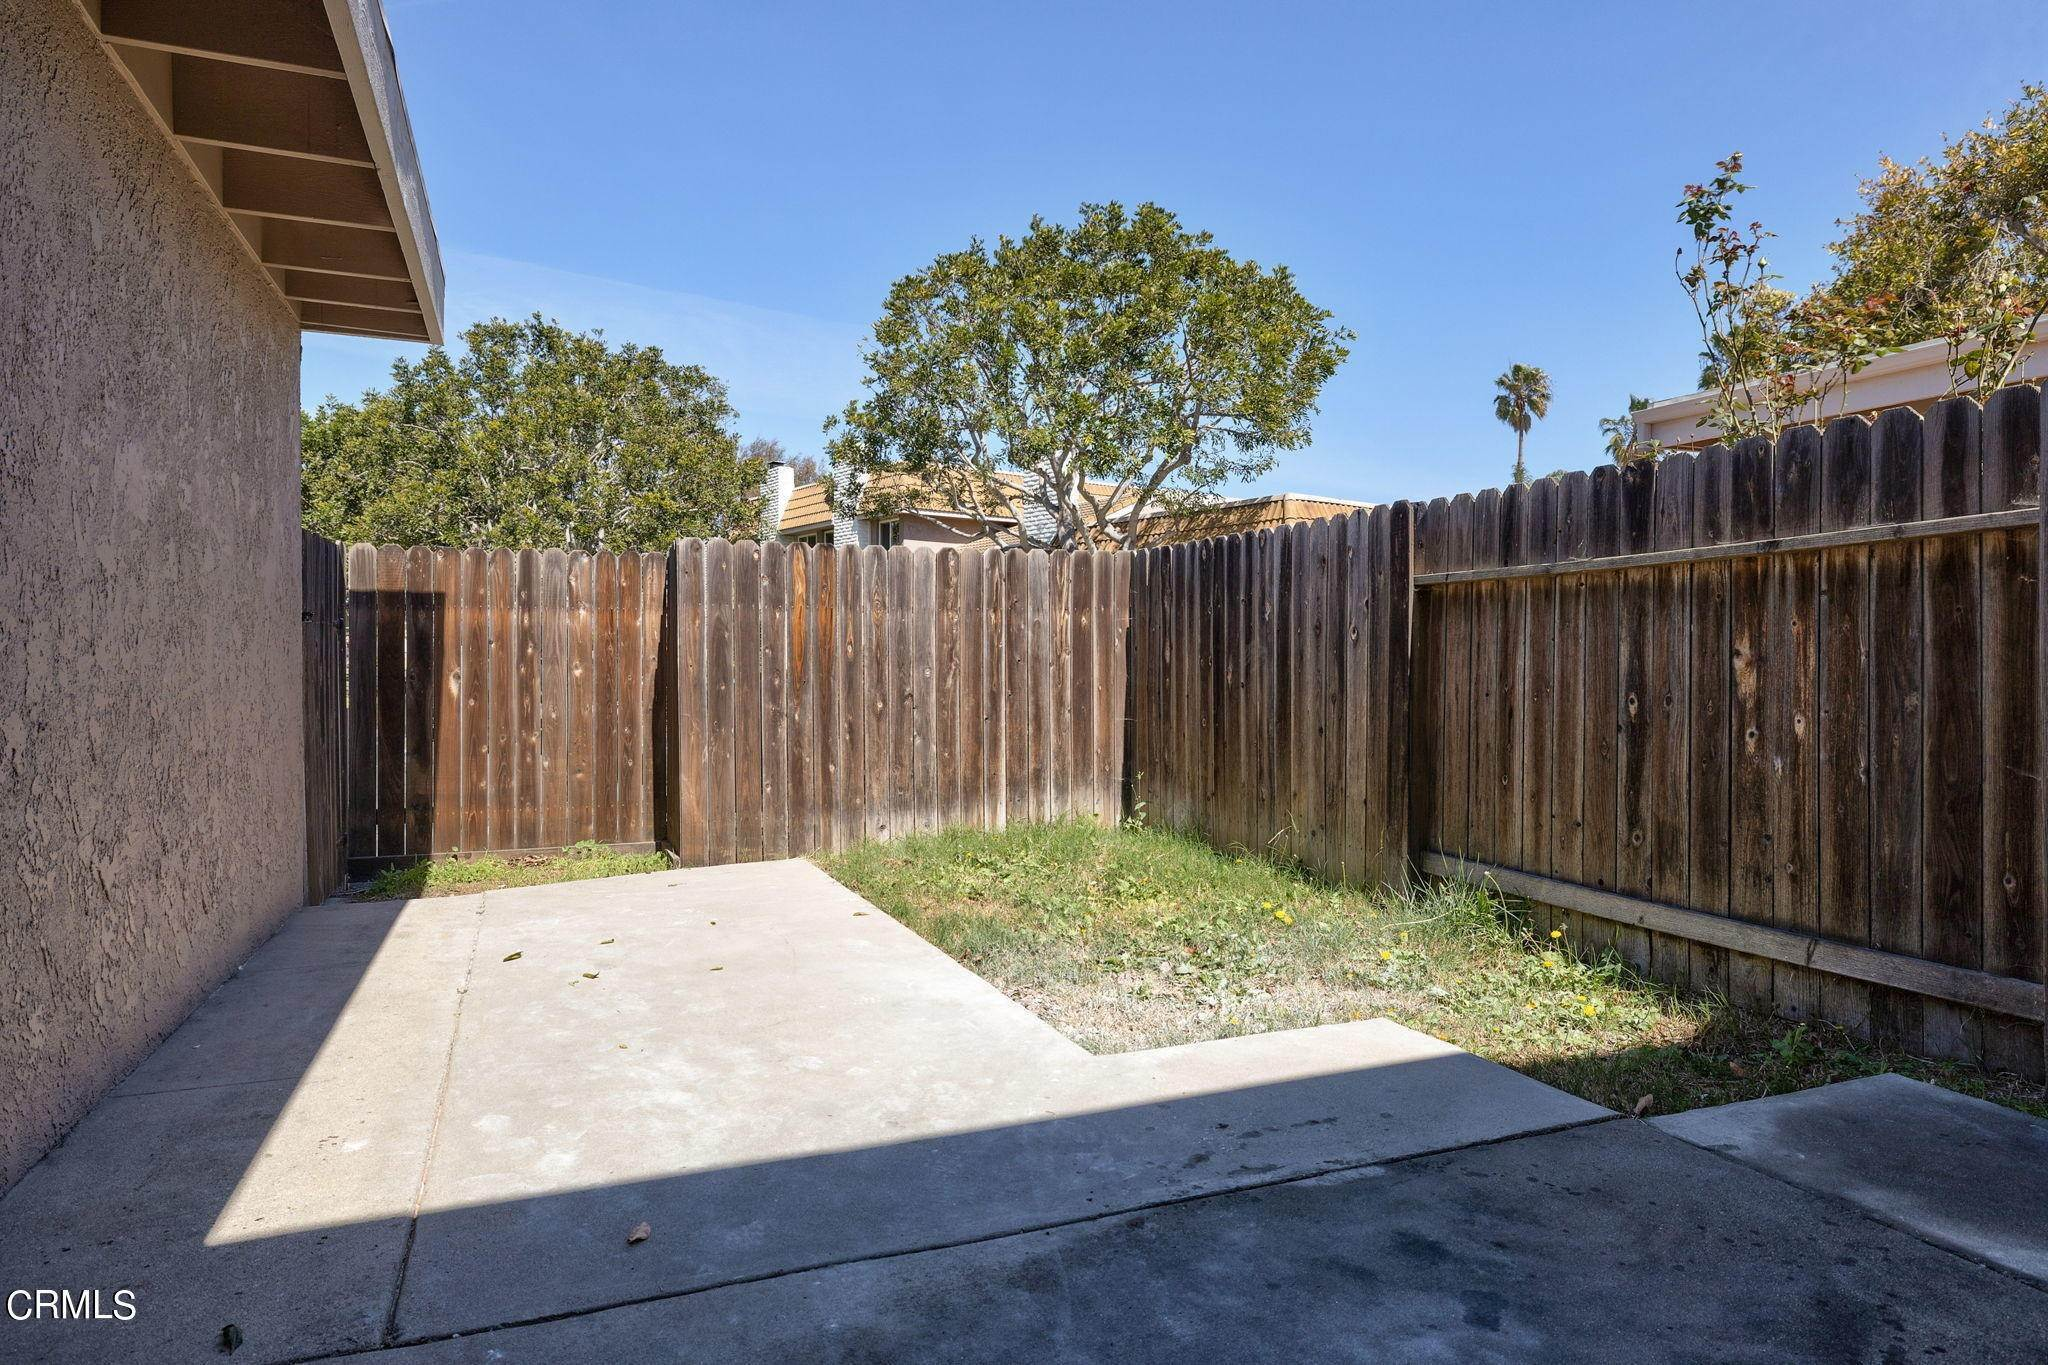 23. townhouses for Sale at 3565 Isle Way Oxnard, California 93035 United States